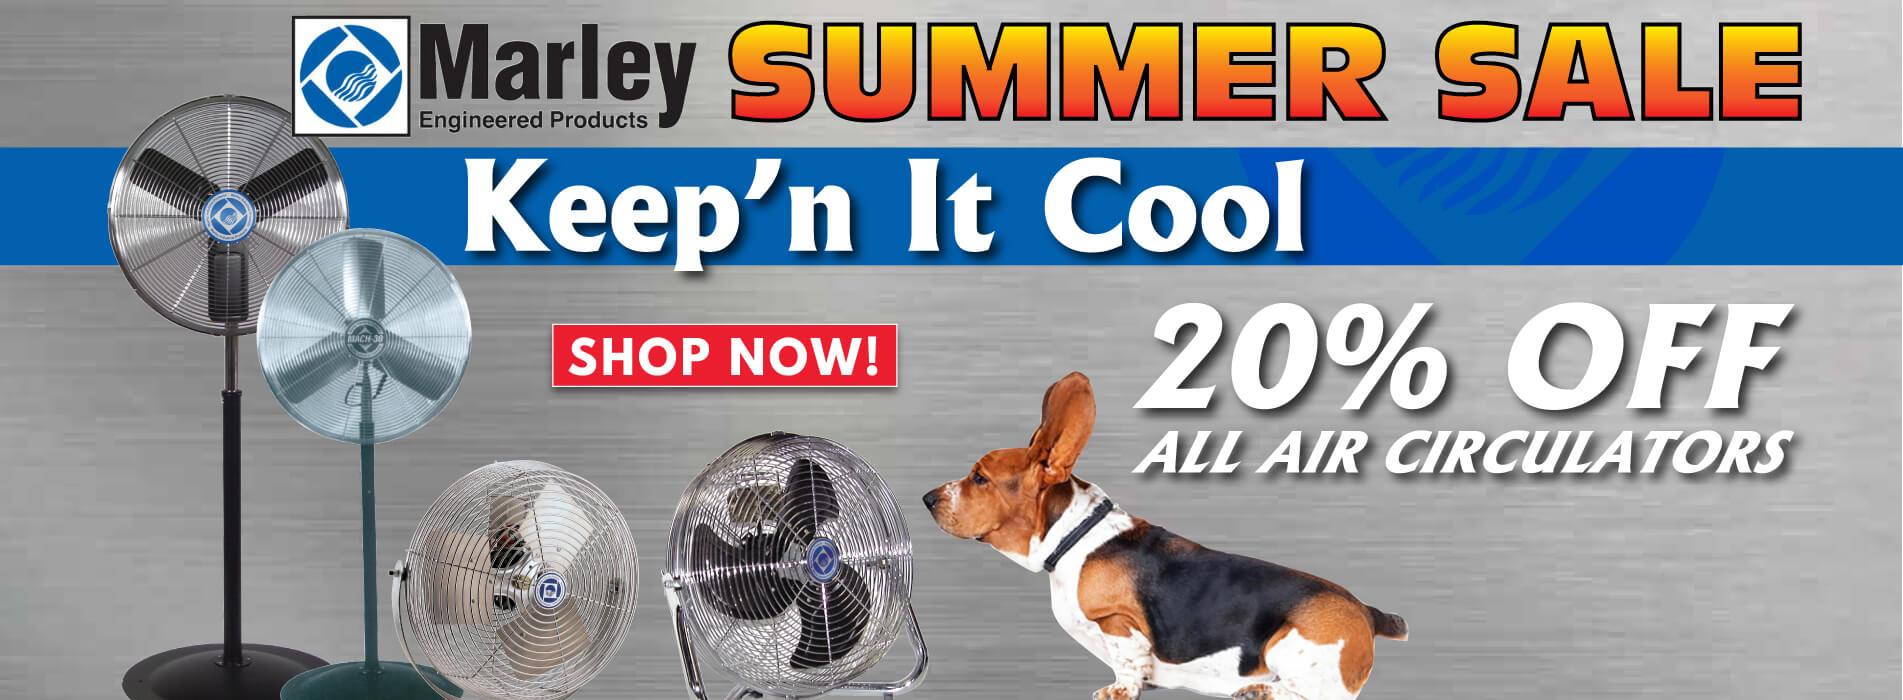 Marley Air Circulator Sale! Save up to 20%!